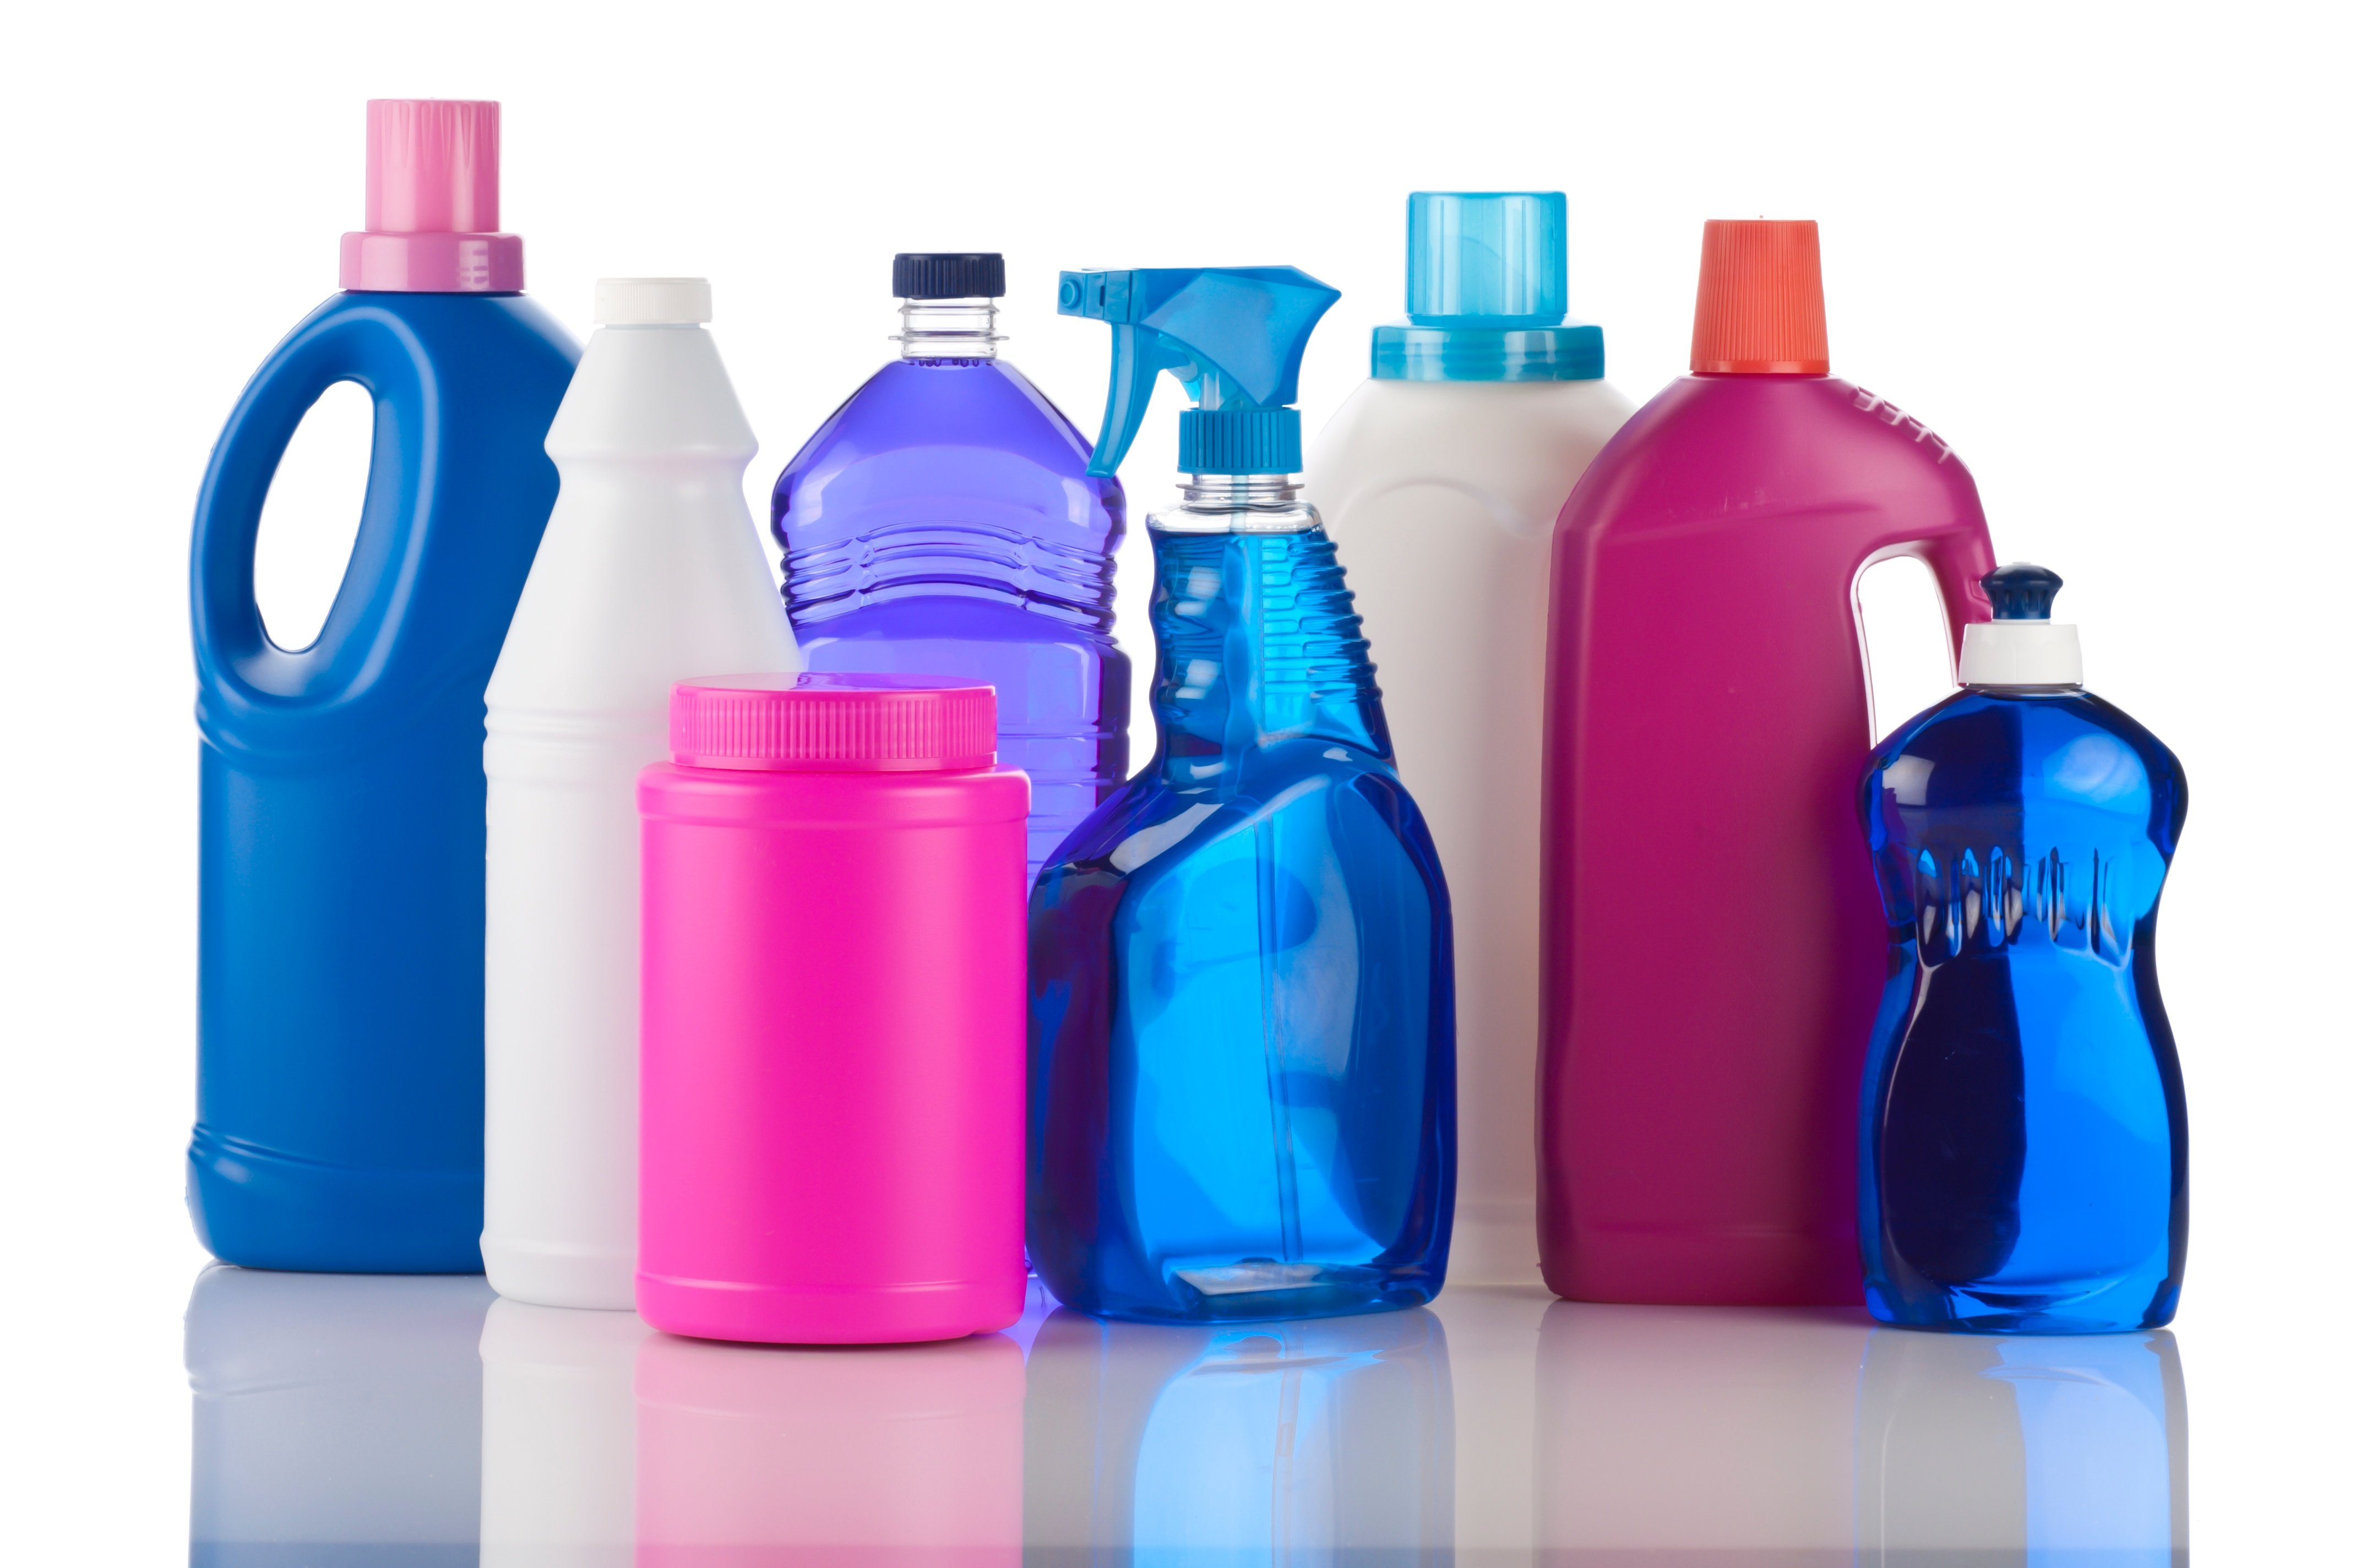 Industrial and household cleaning supplies use fragrance.